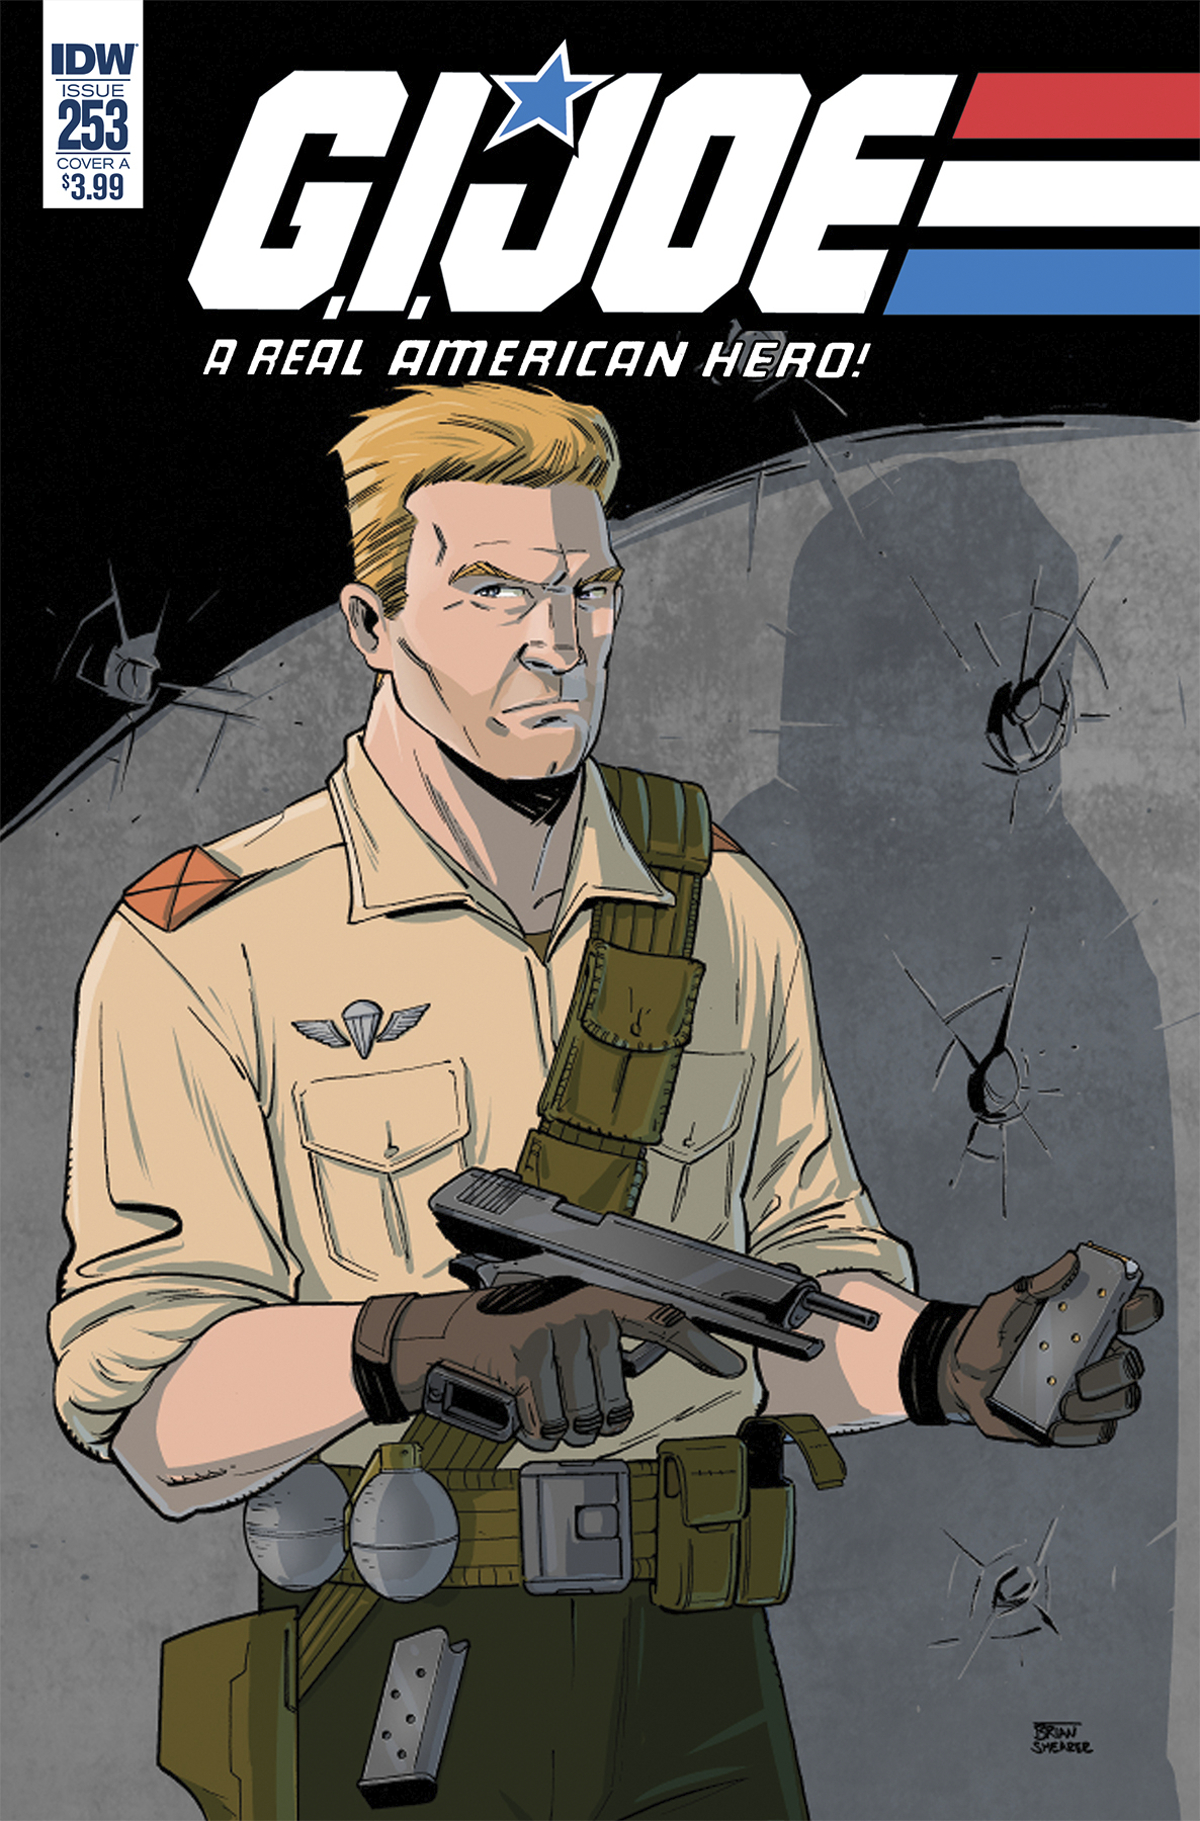 GI JOE A REAL AMERICAN HERO #253 CVR A SHEARER